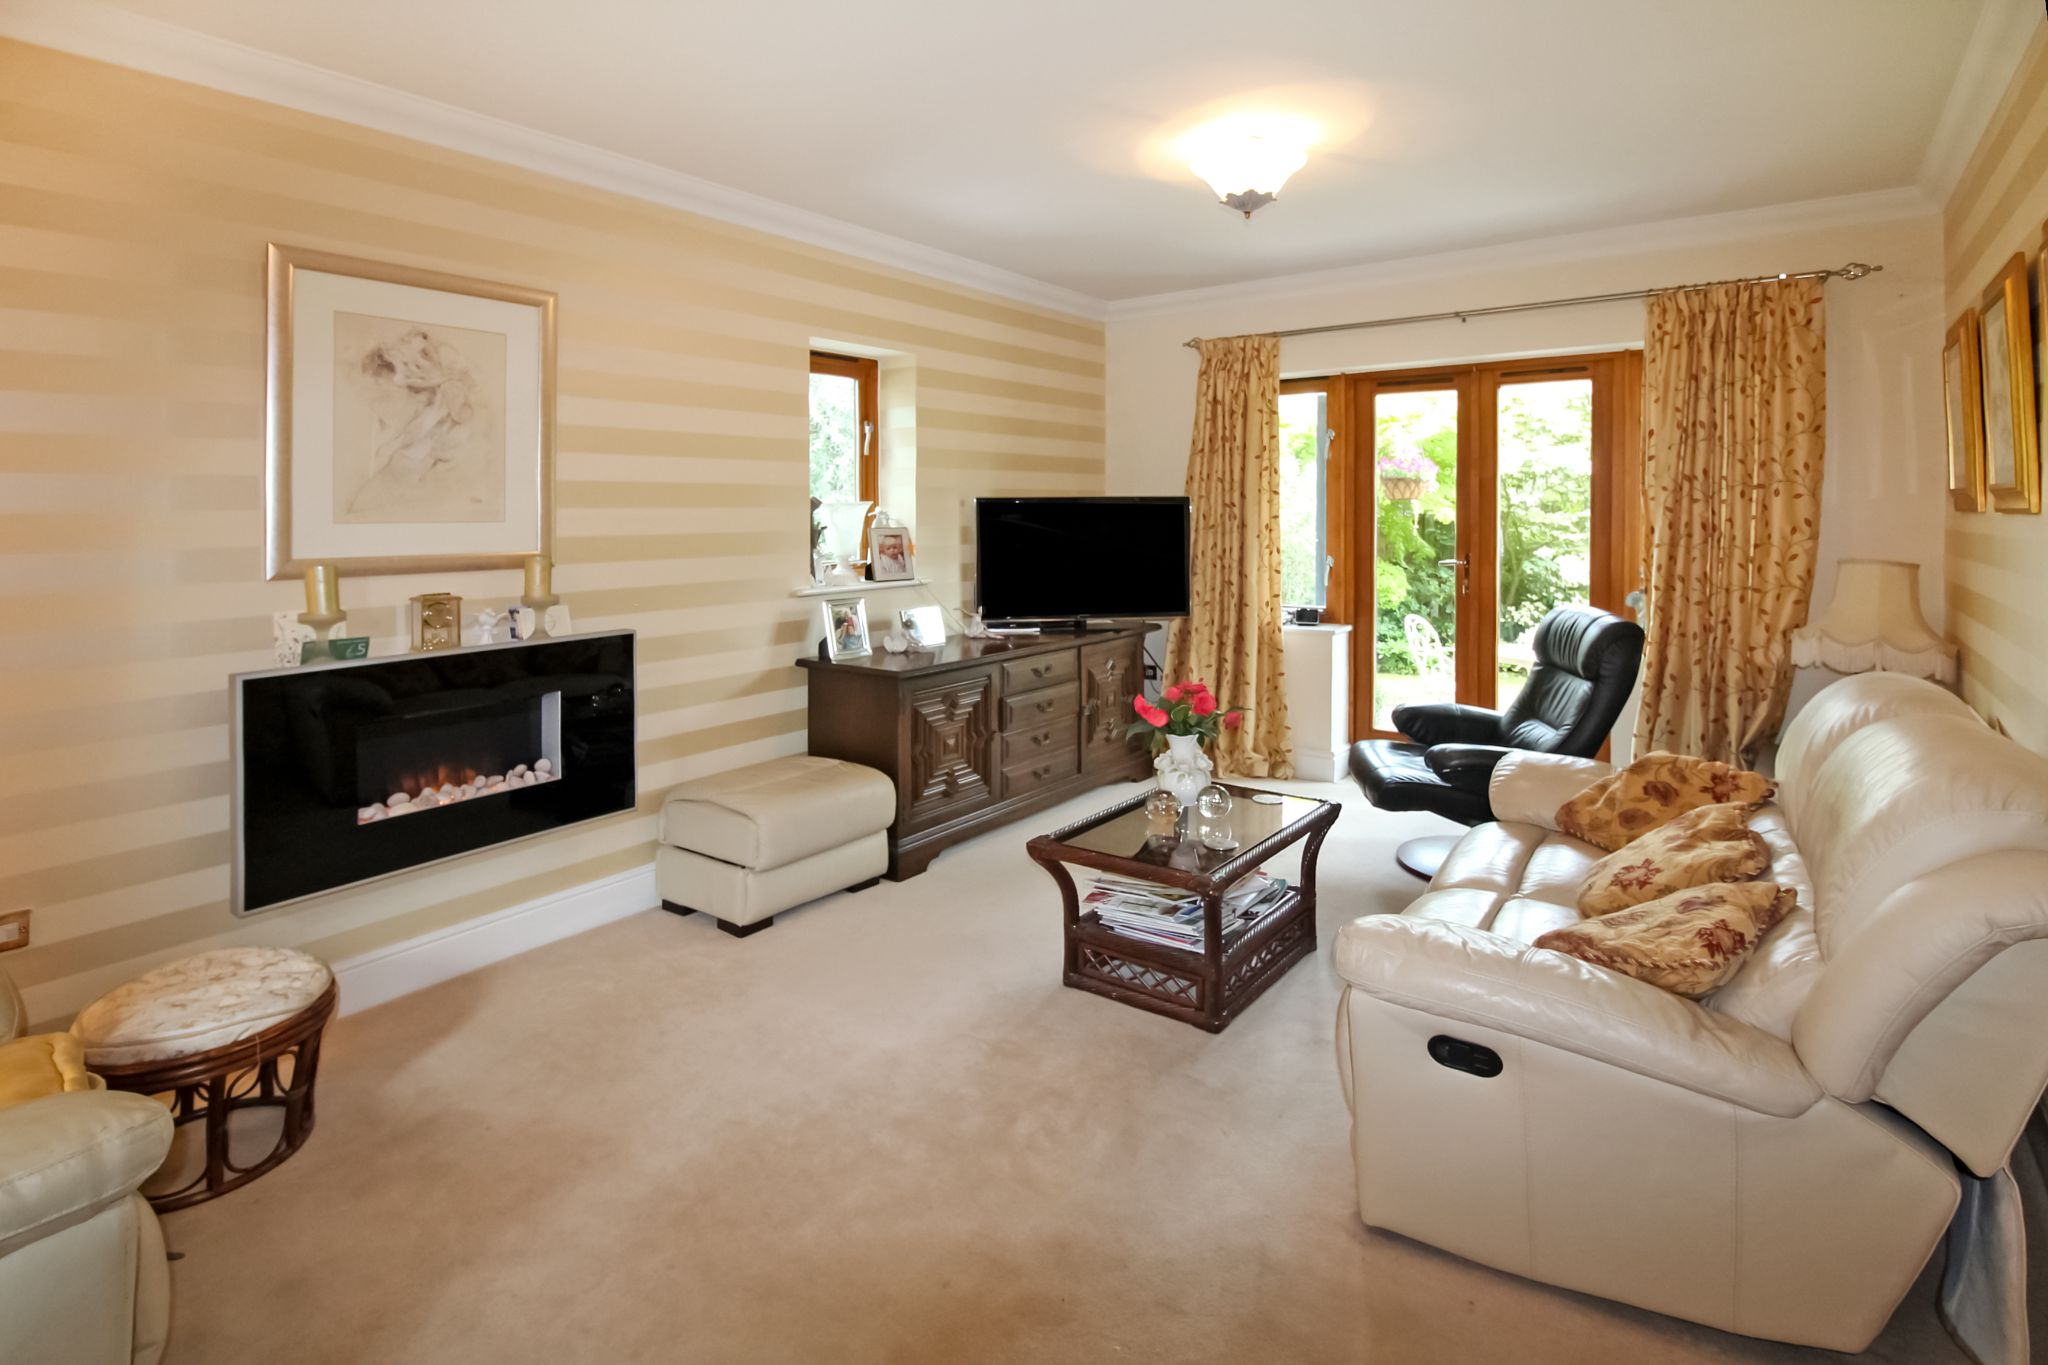 3 bedroom semi-detached house SSTC in Solihull - Photograph 7.